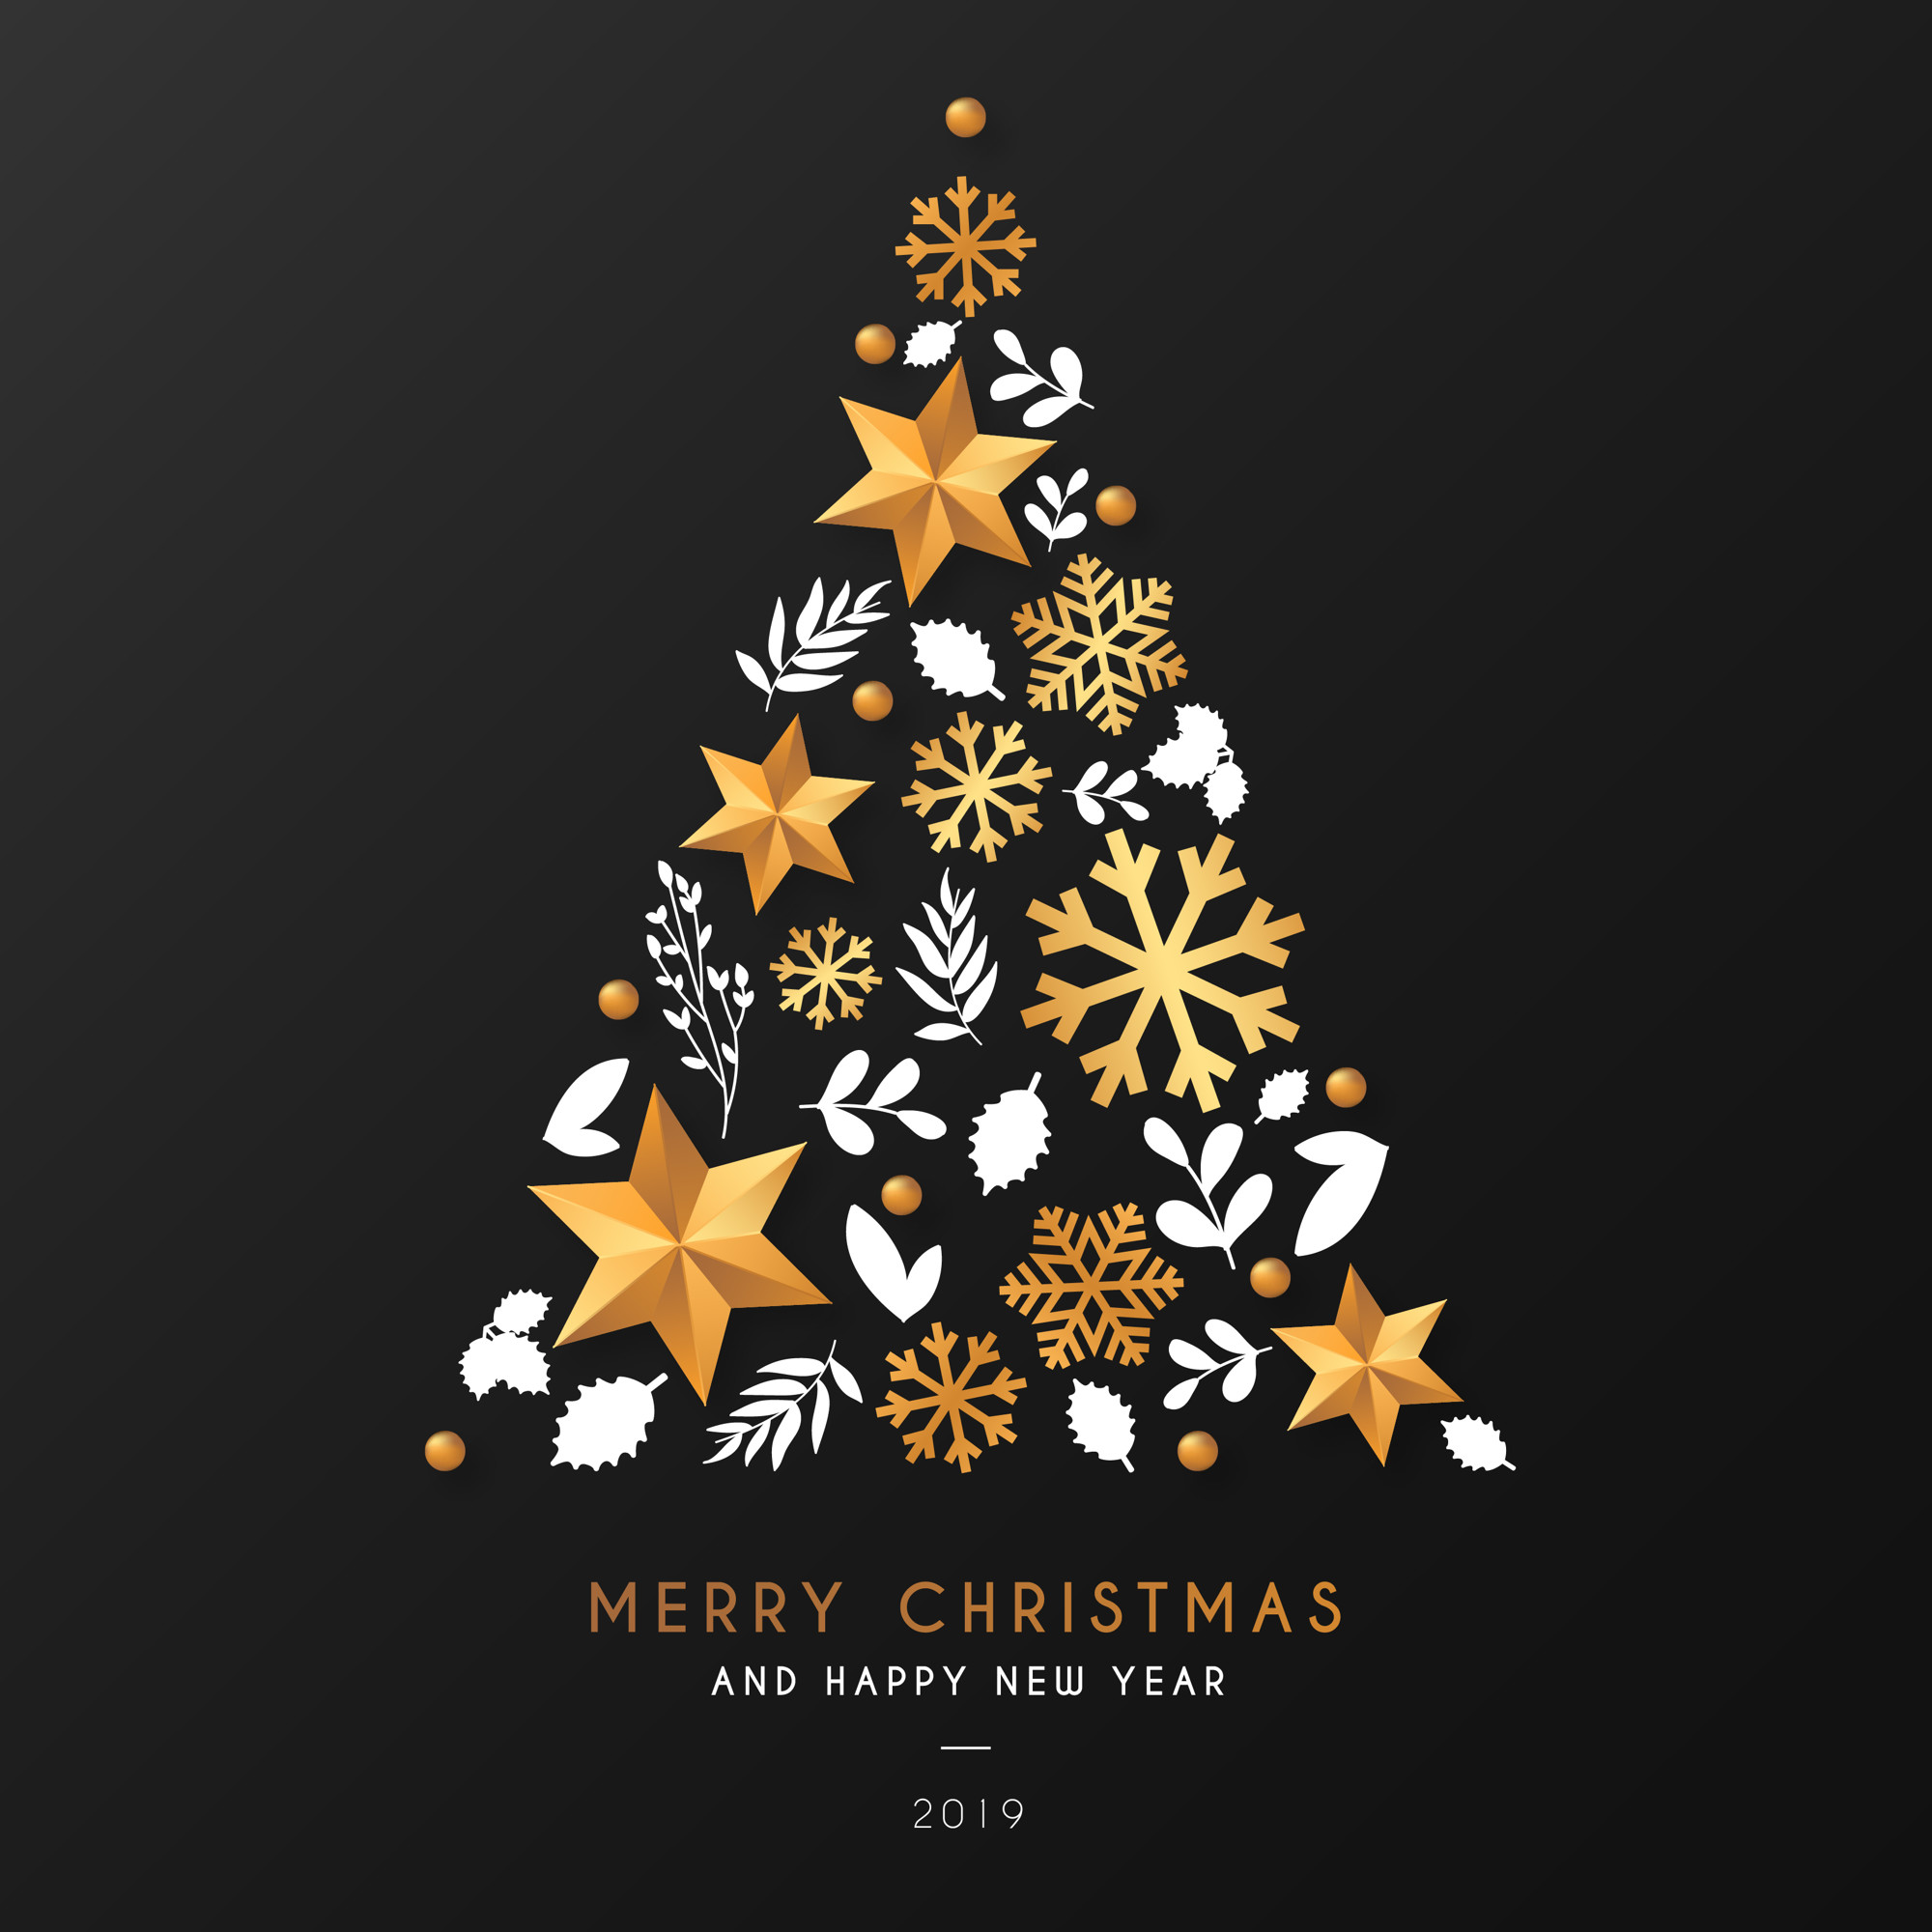 Christmas Tree Background with Ornamental Elements